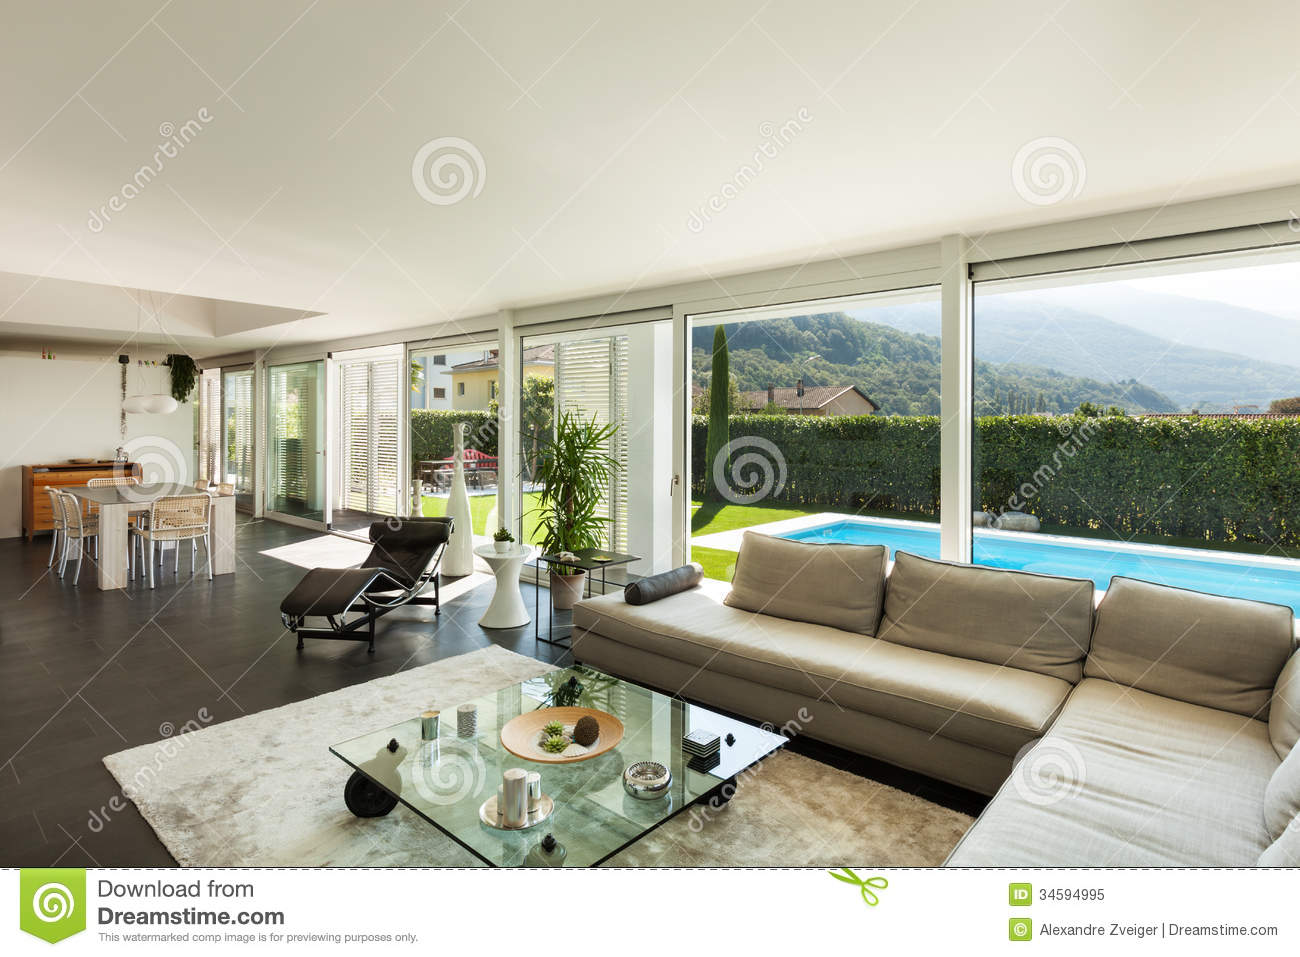 Modern villa beautiful interiors stock image image of for Decor house interiors